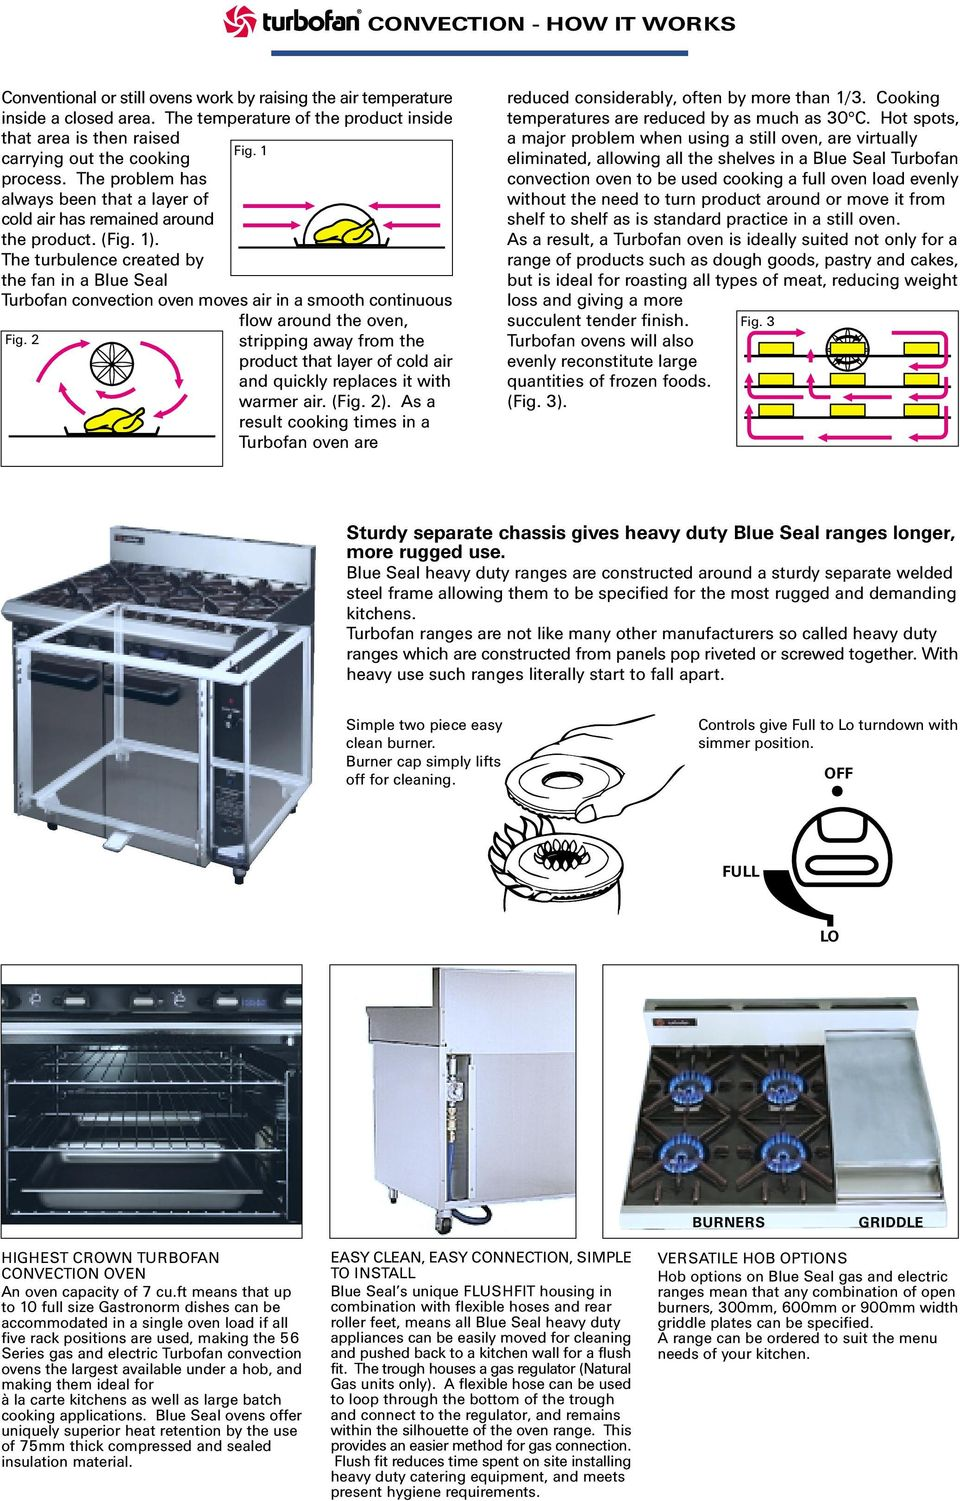 The turbulence created by the fan in a Blue Seal Turbofan convection oven moves air in a smooth continuous flow around the oven, Fig.